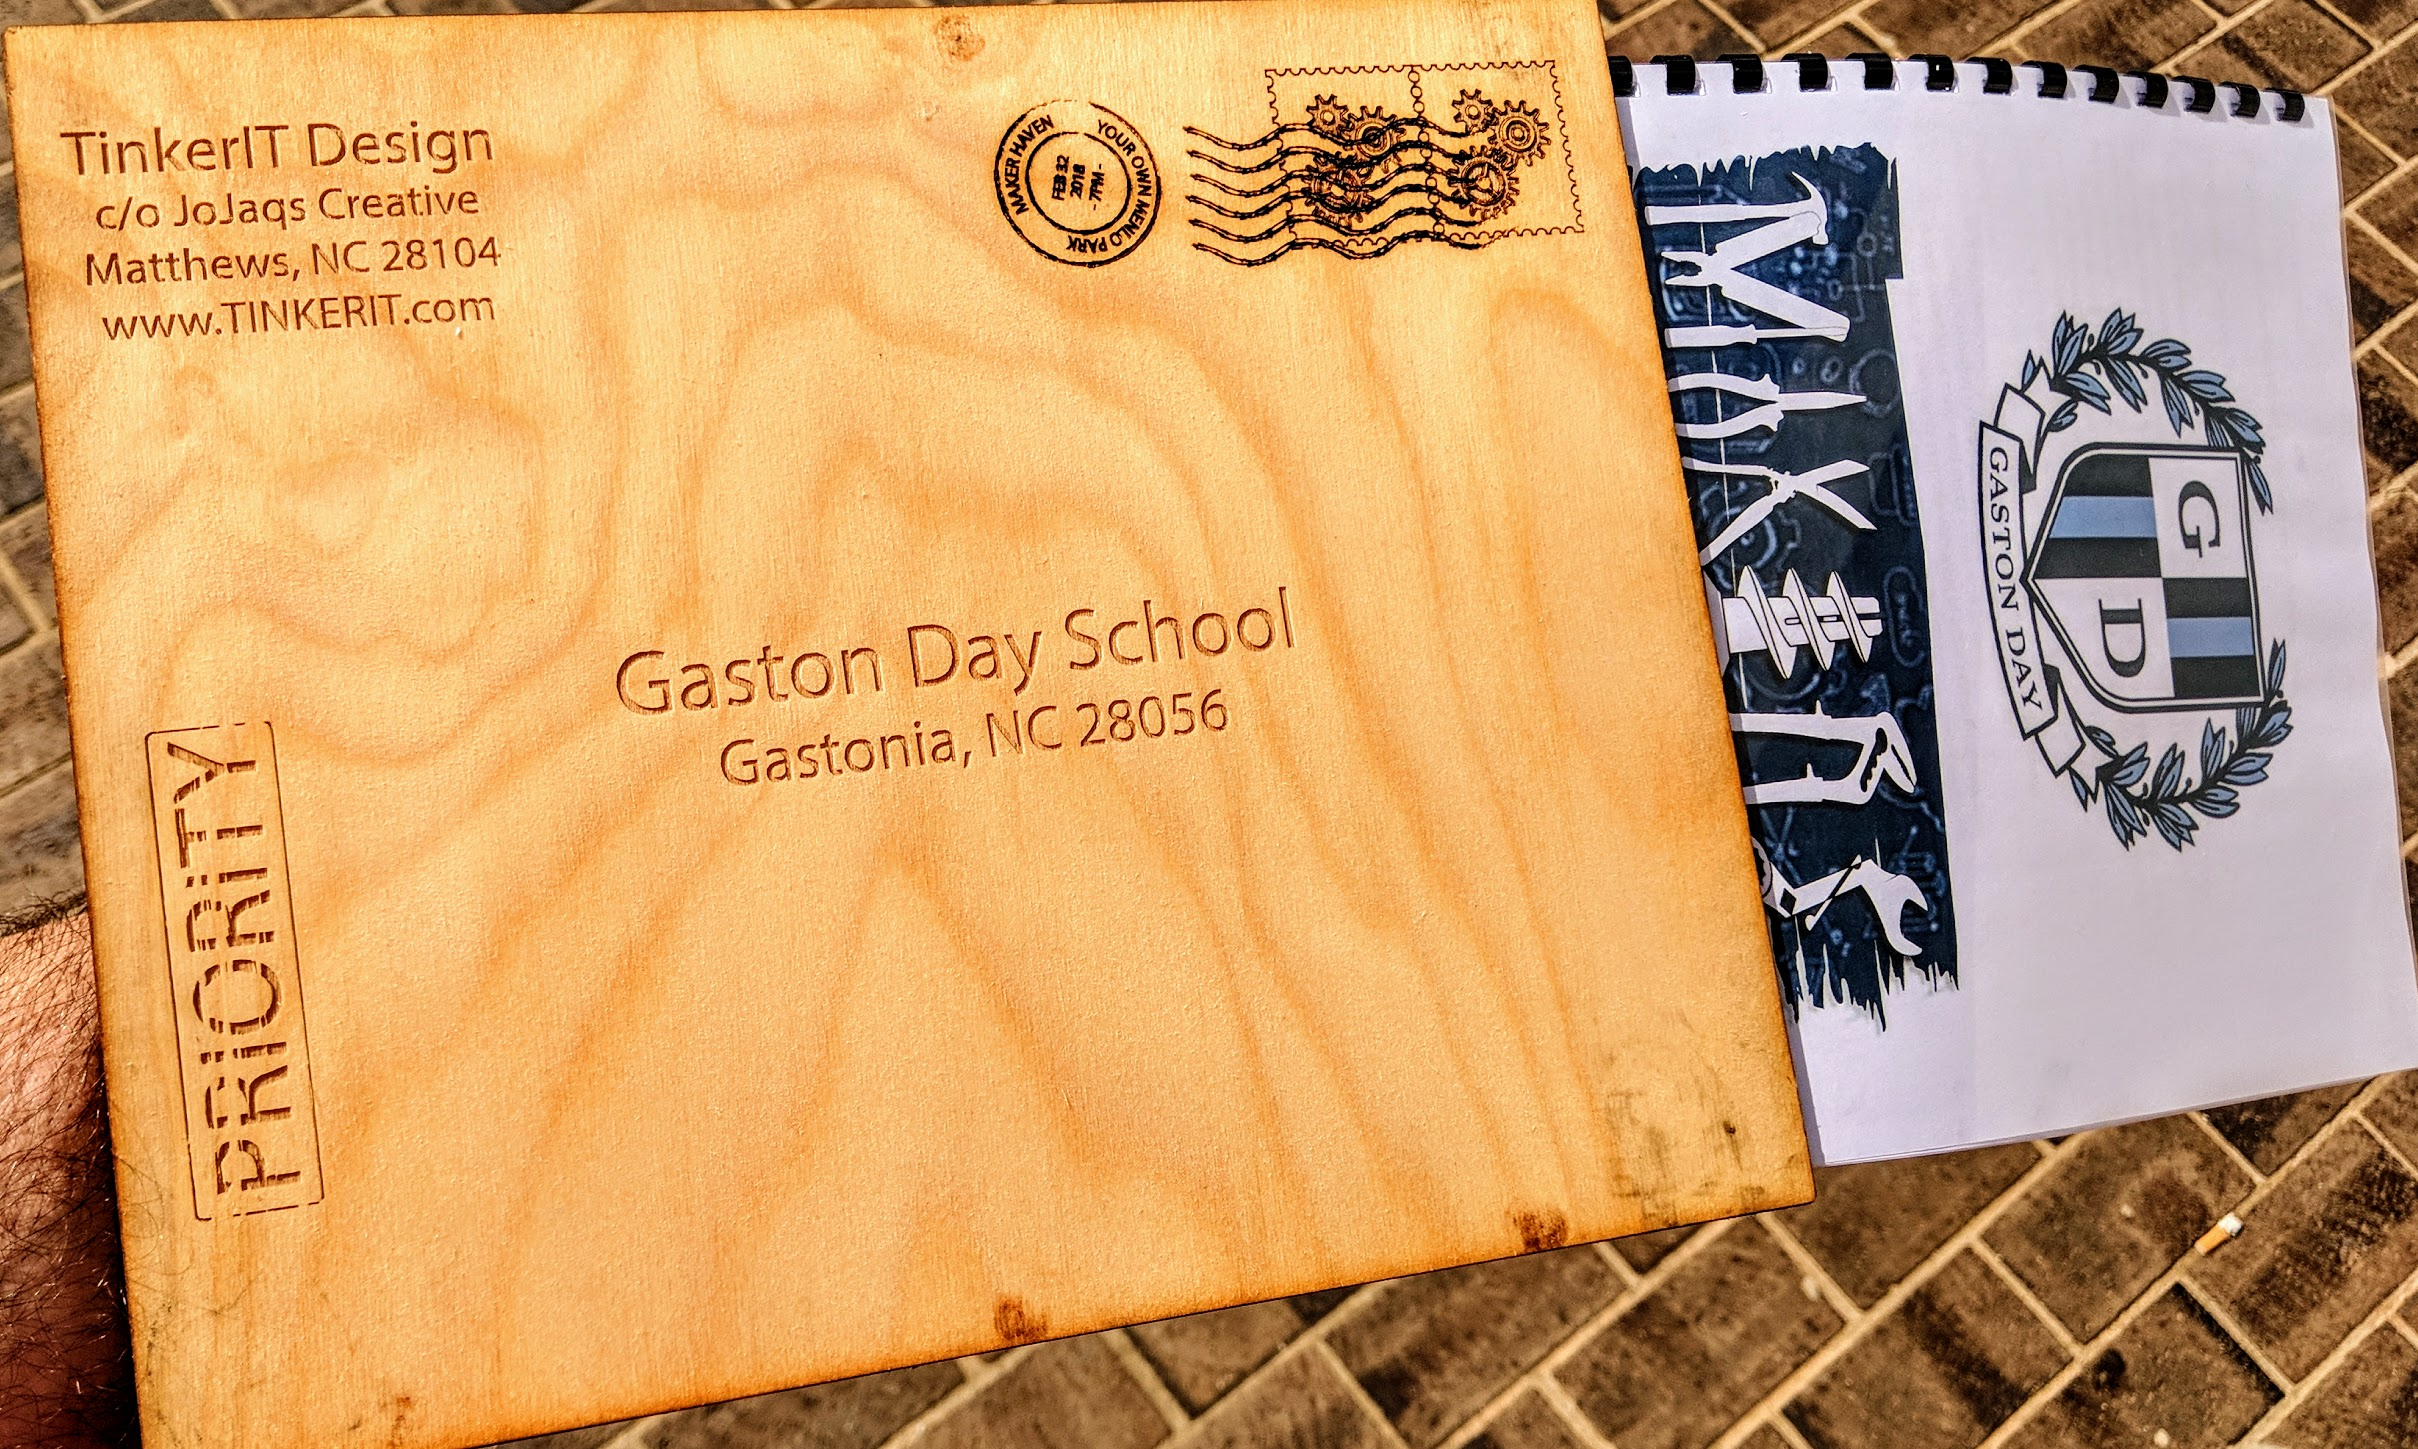 The Maker Space deign document for Gaston Day School, made from laser-cut Baltic Birch.